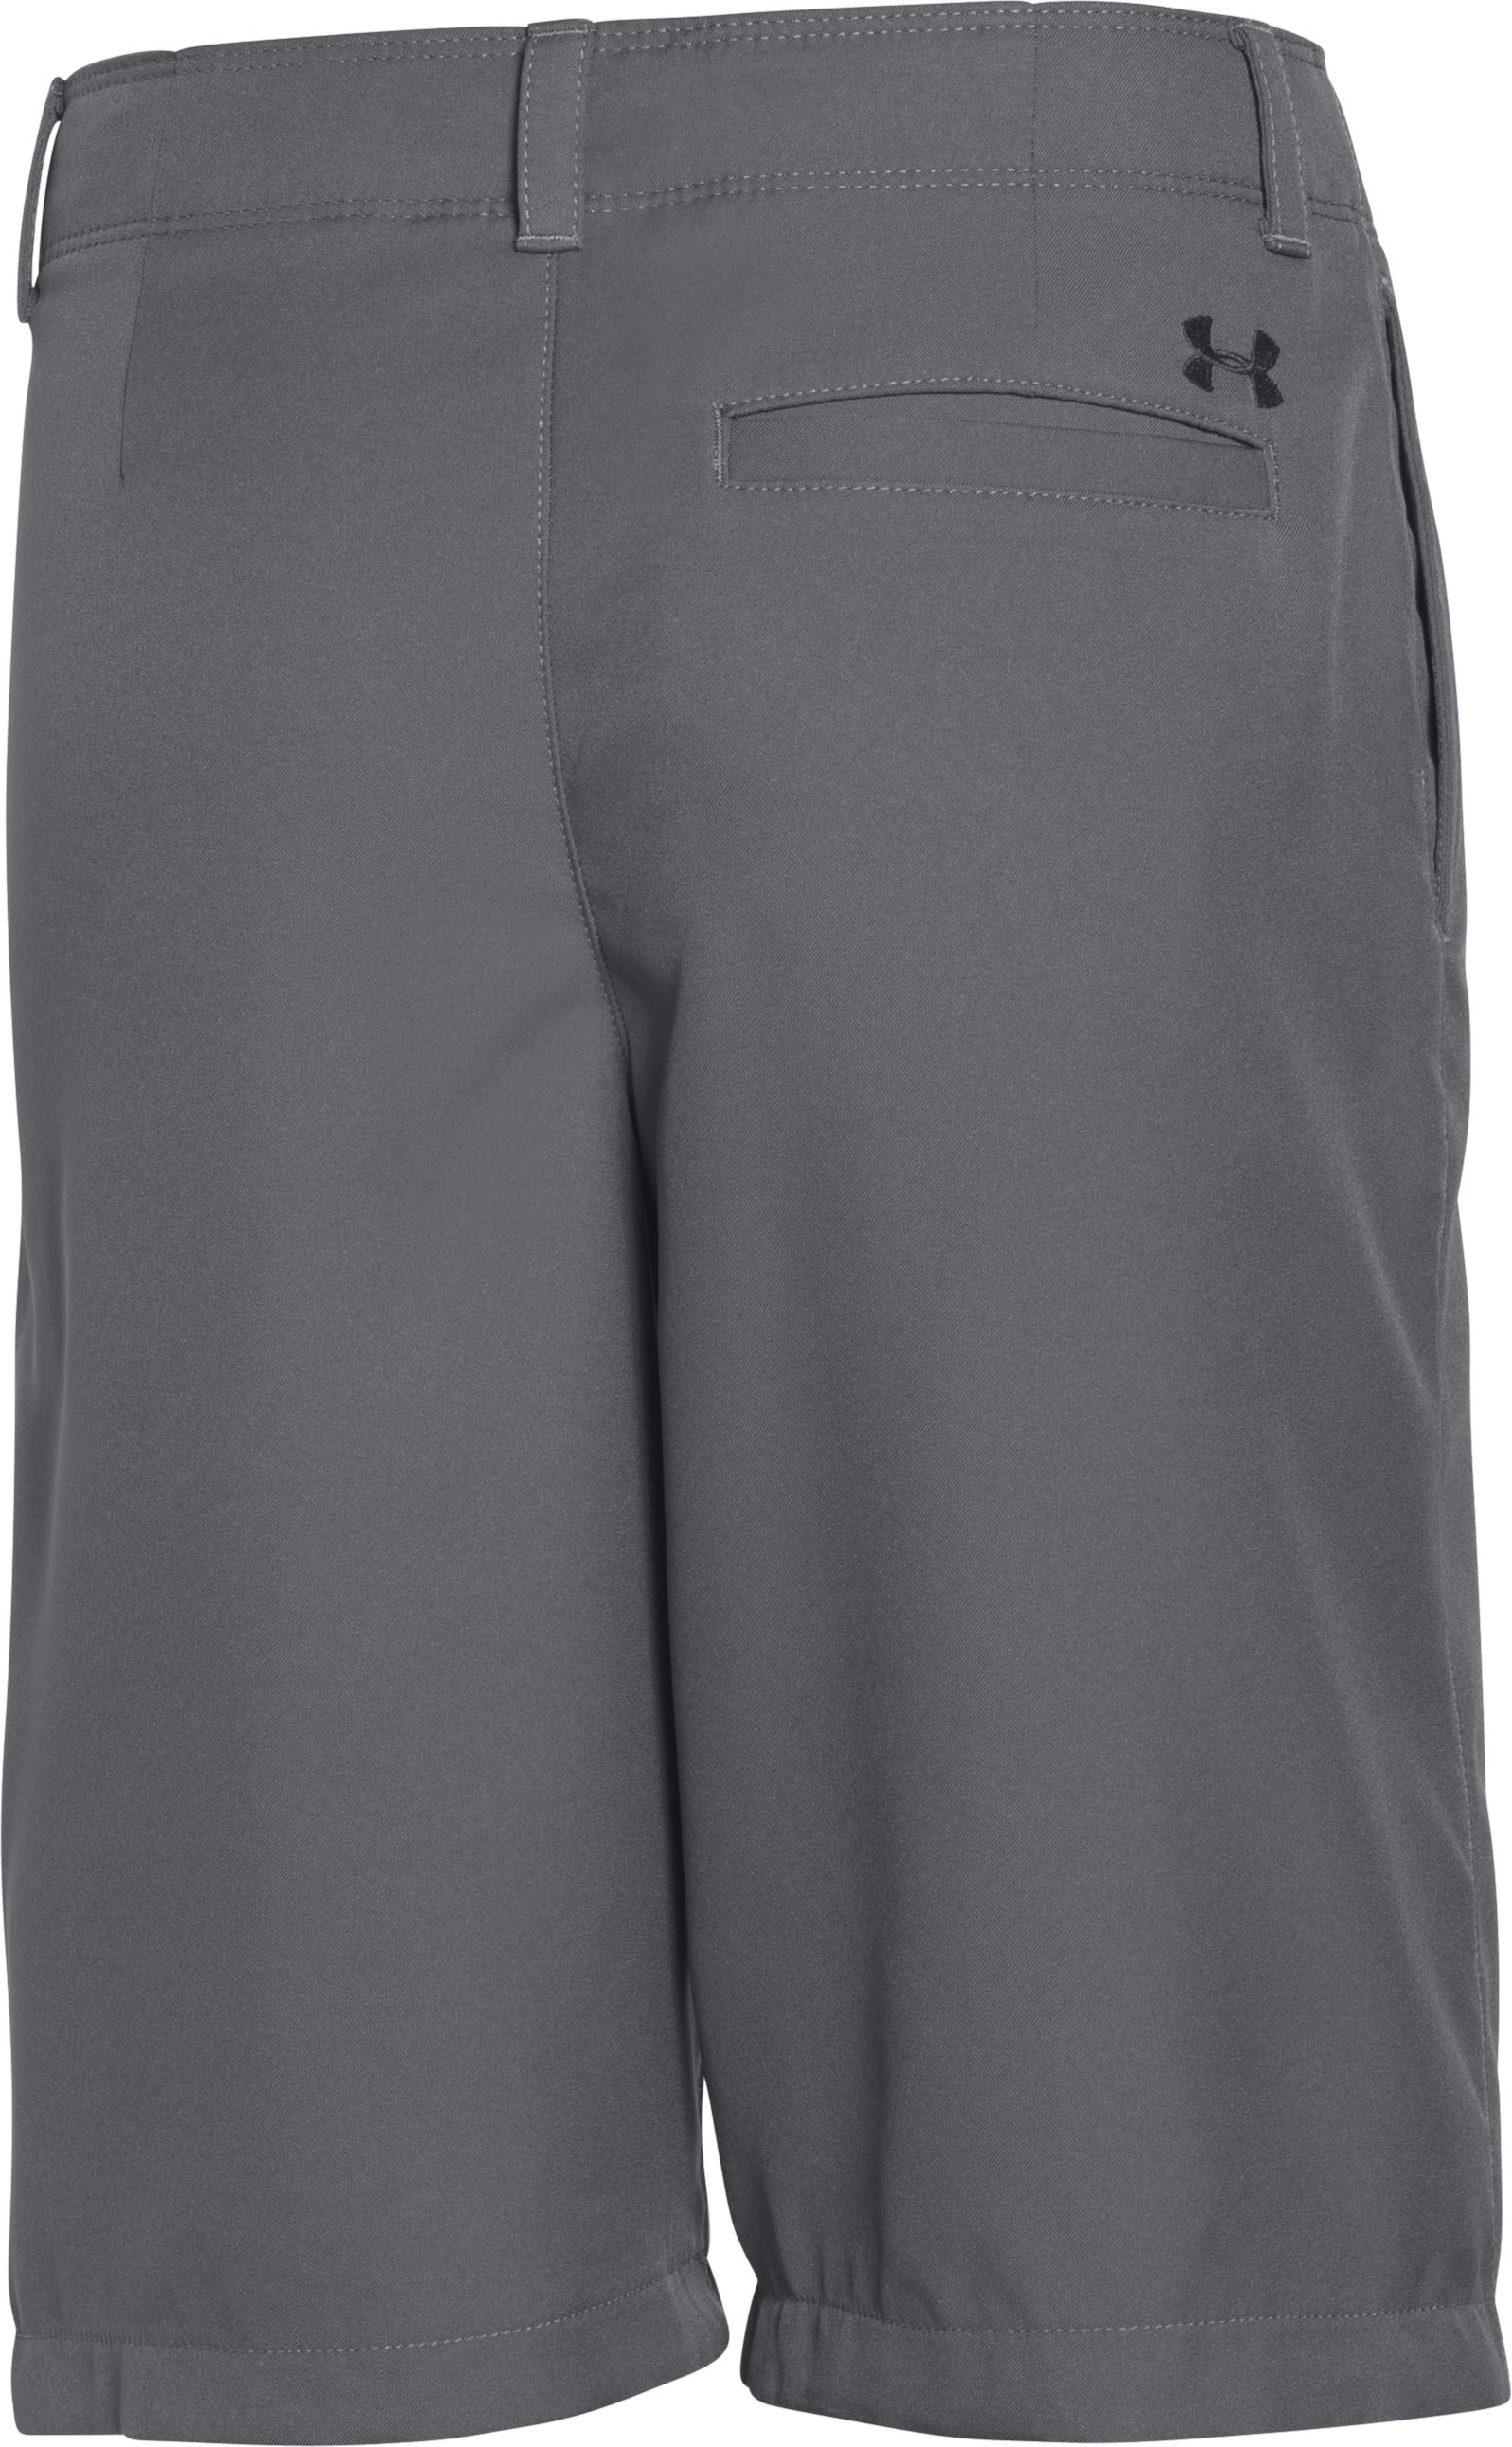 Boys' UA Medal Play Golf Shorts , Graphite, undefined